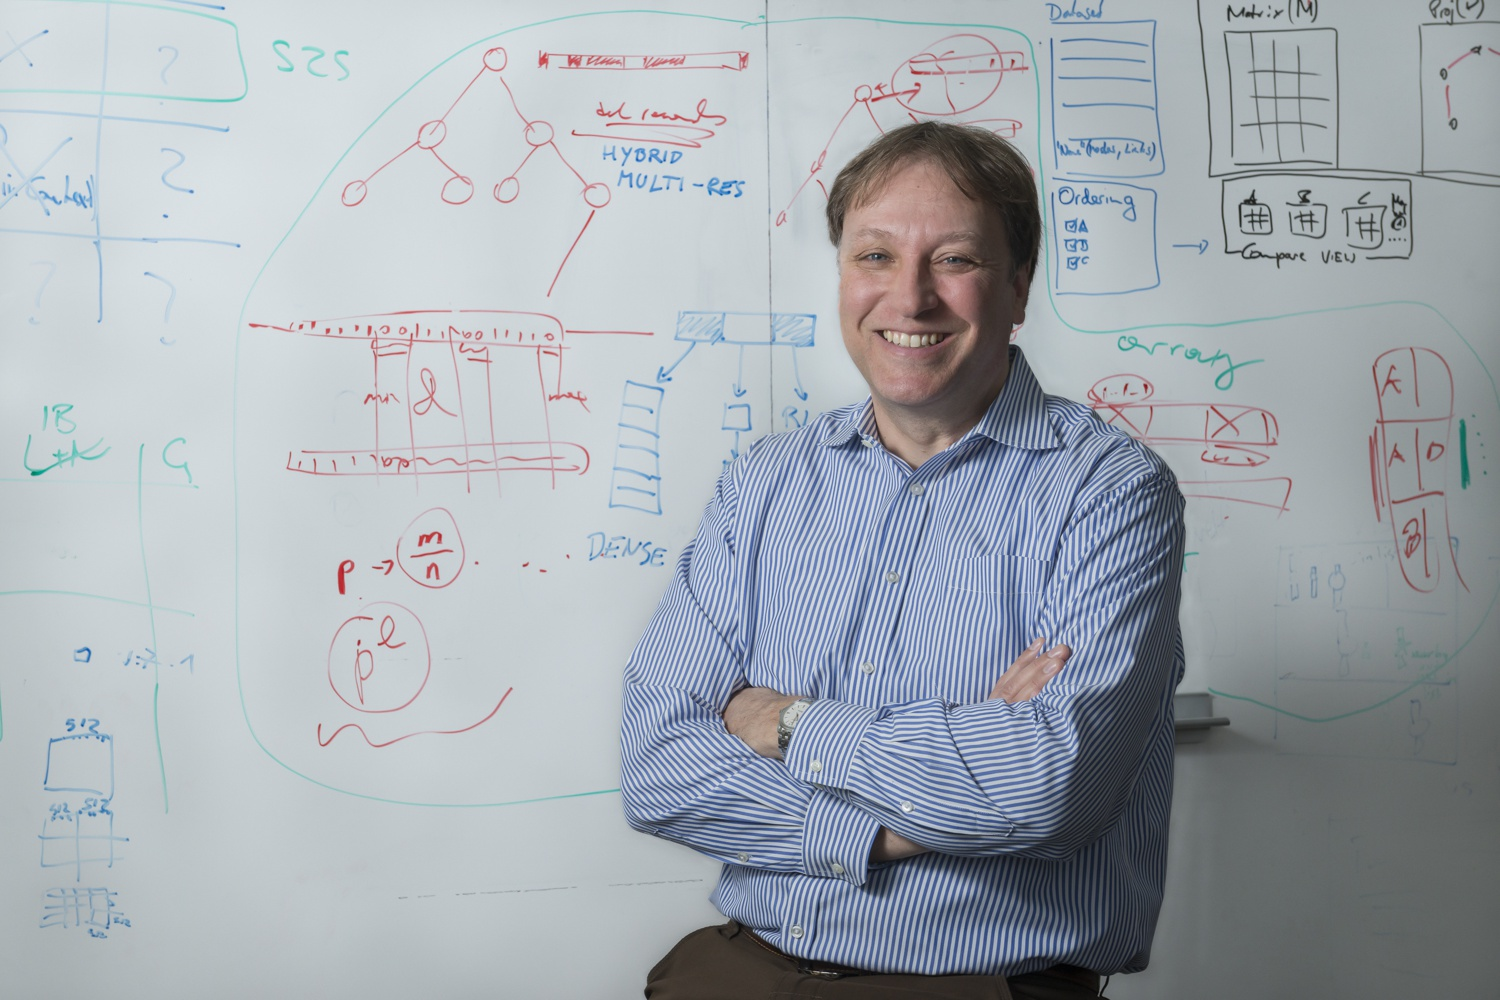 Computer Science Professor Hanspeter Pfister studies visual computing across a wide range of topics, including biomedical visualization and visual data analytics.